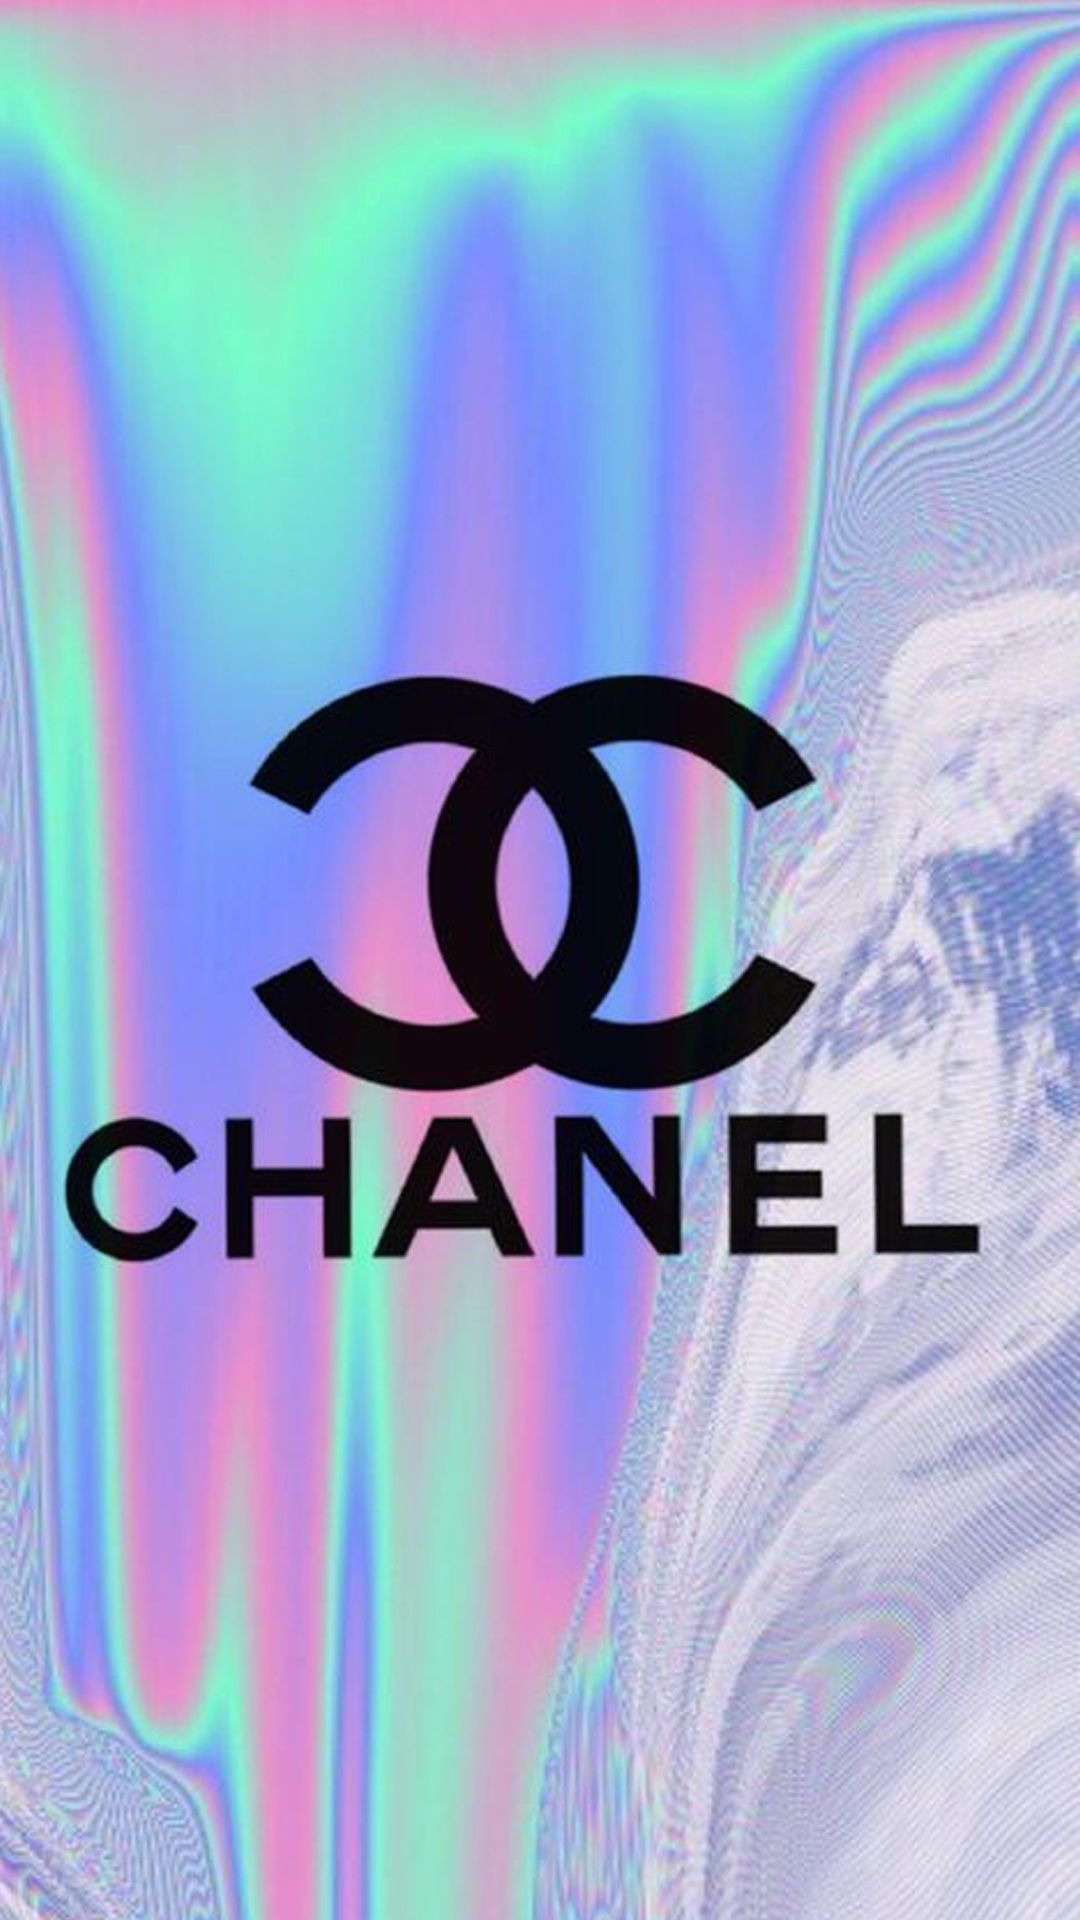 Girly chanel iphone wallpaper wallpapers for iphone - Girly screensavers for iphone ...